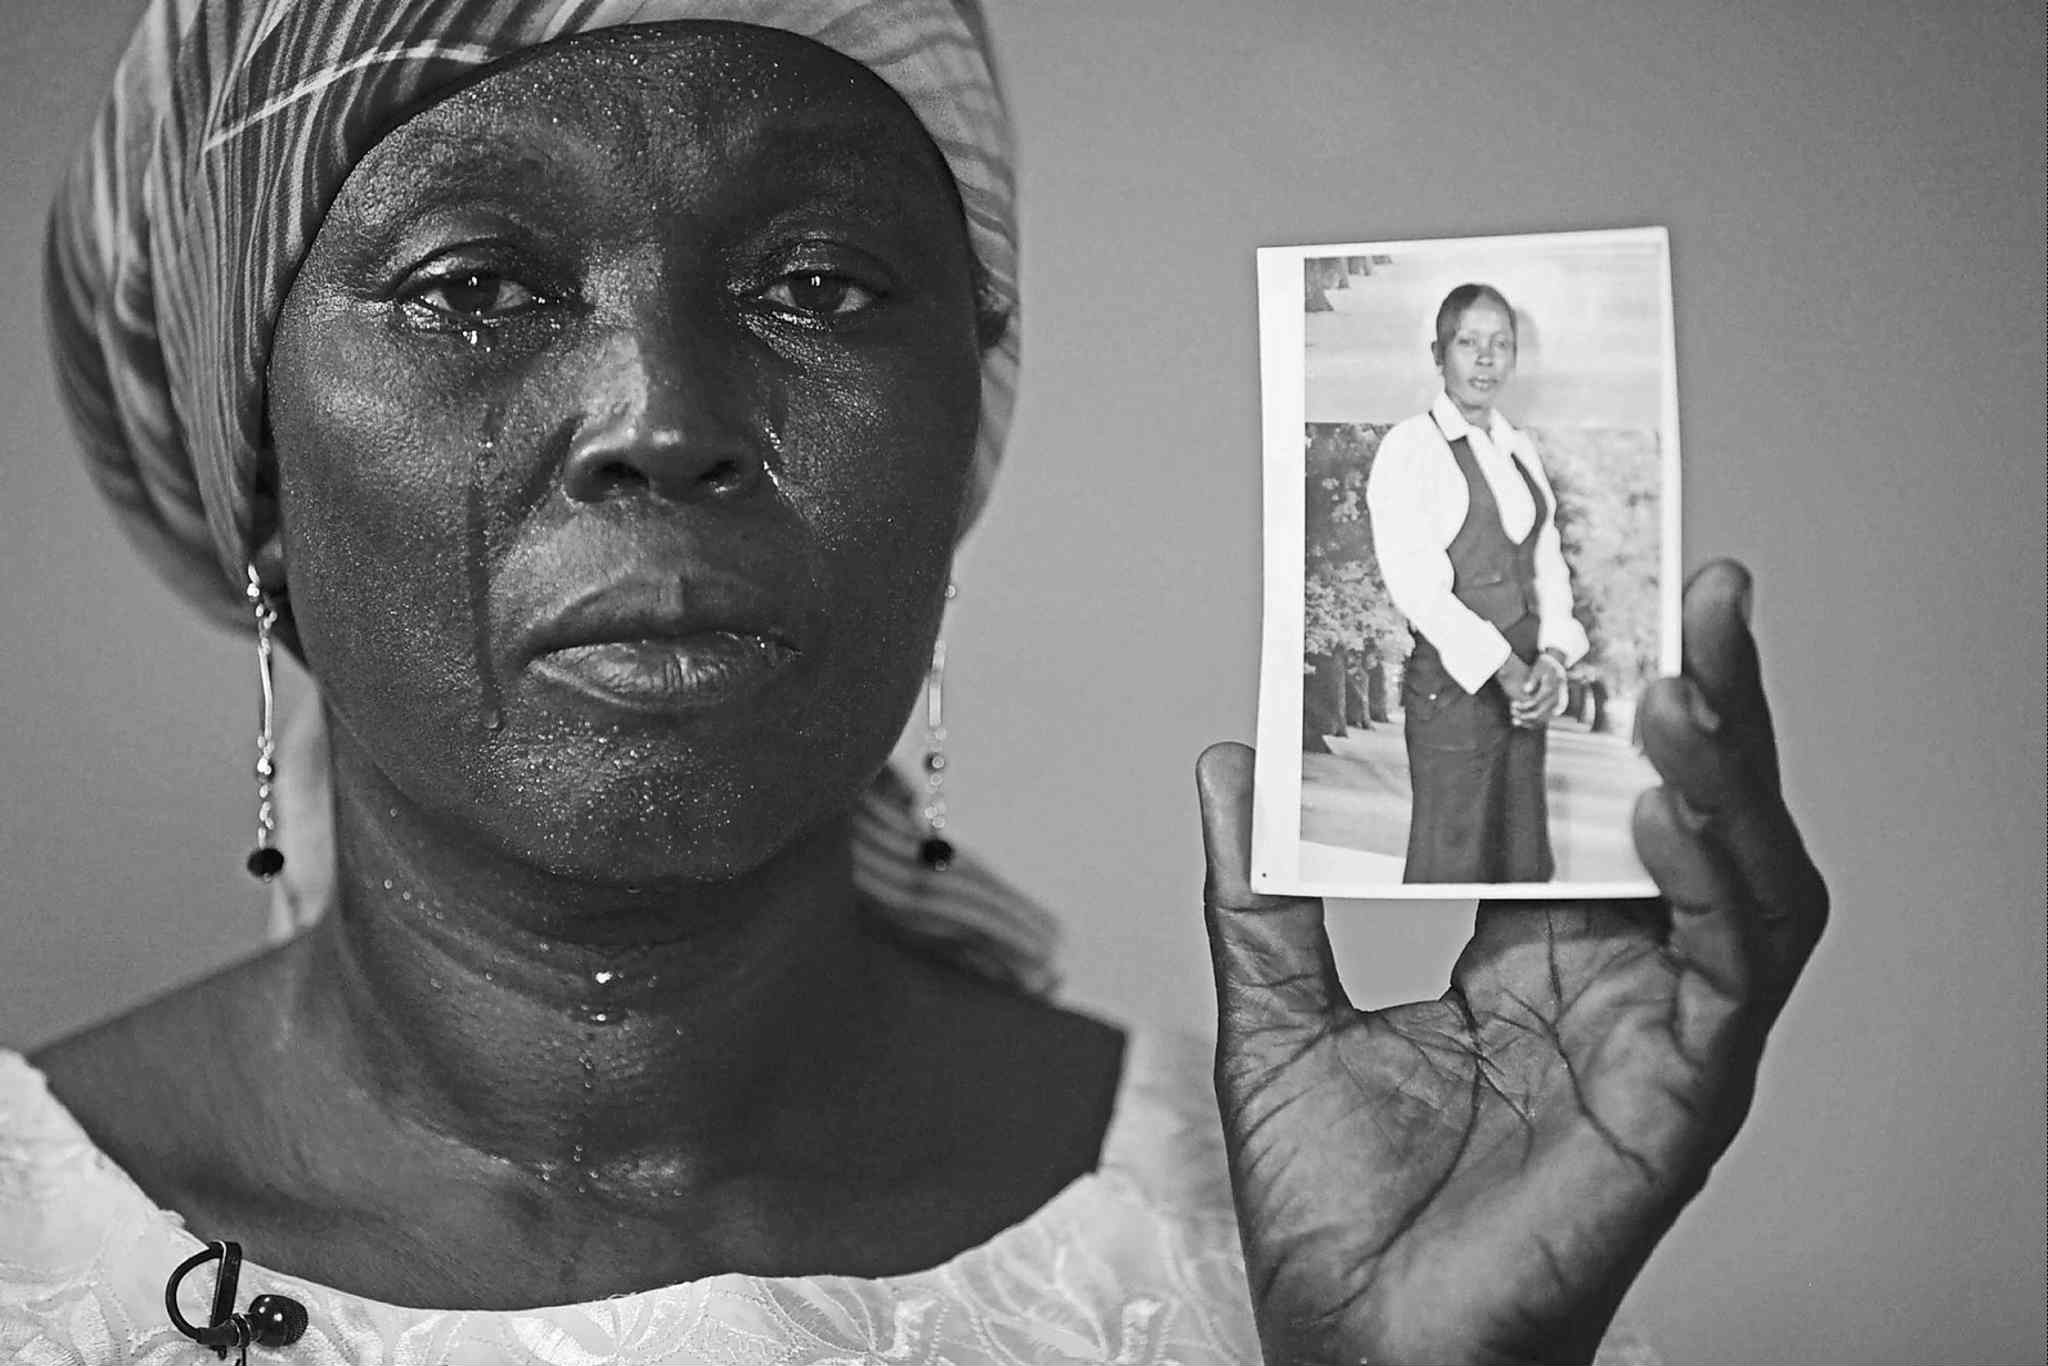 Martha Mark,  the mother of  kidnapped  schoolgirl Monica Mark, cries as she shows her daughter�s photo in Chibok, Nigeria.